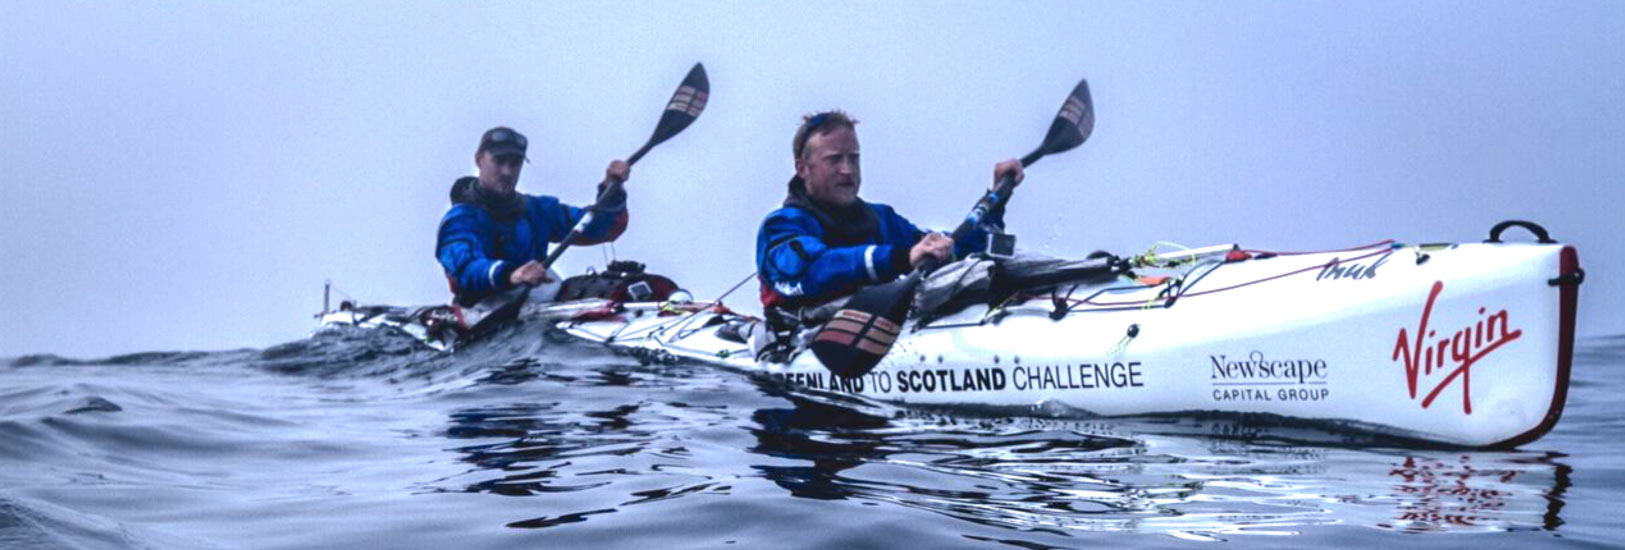 greenland-to-scotland-challenge-2016